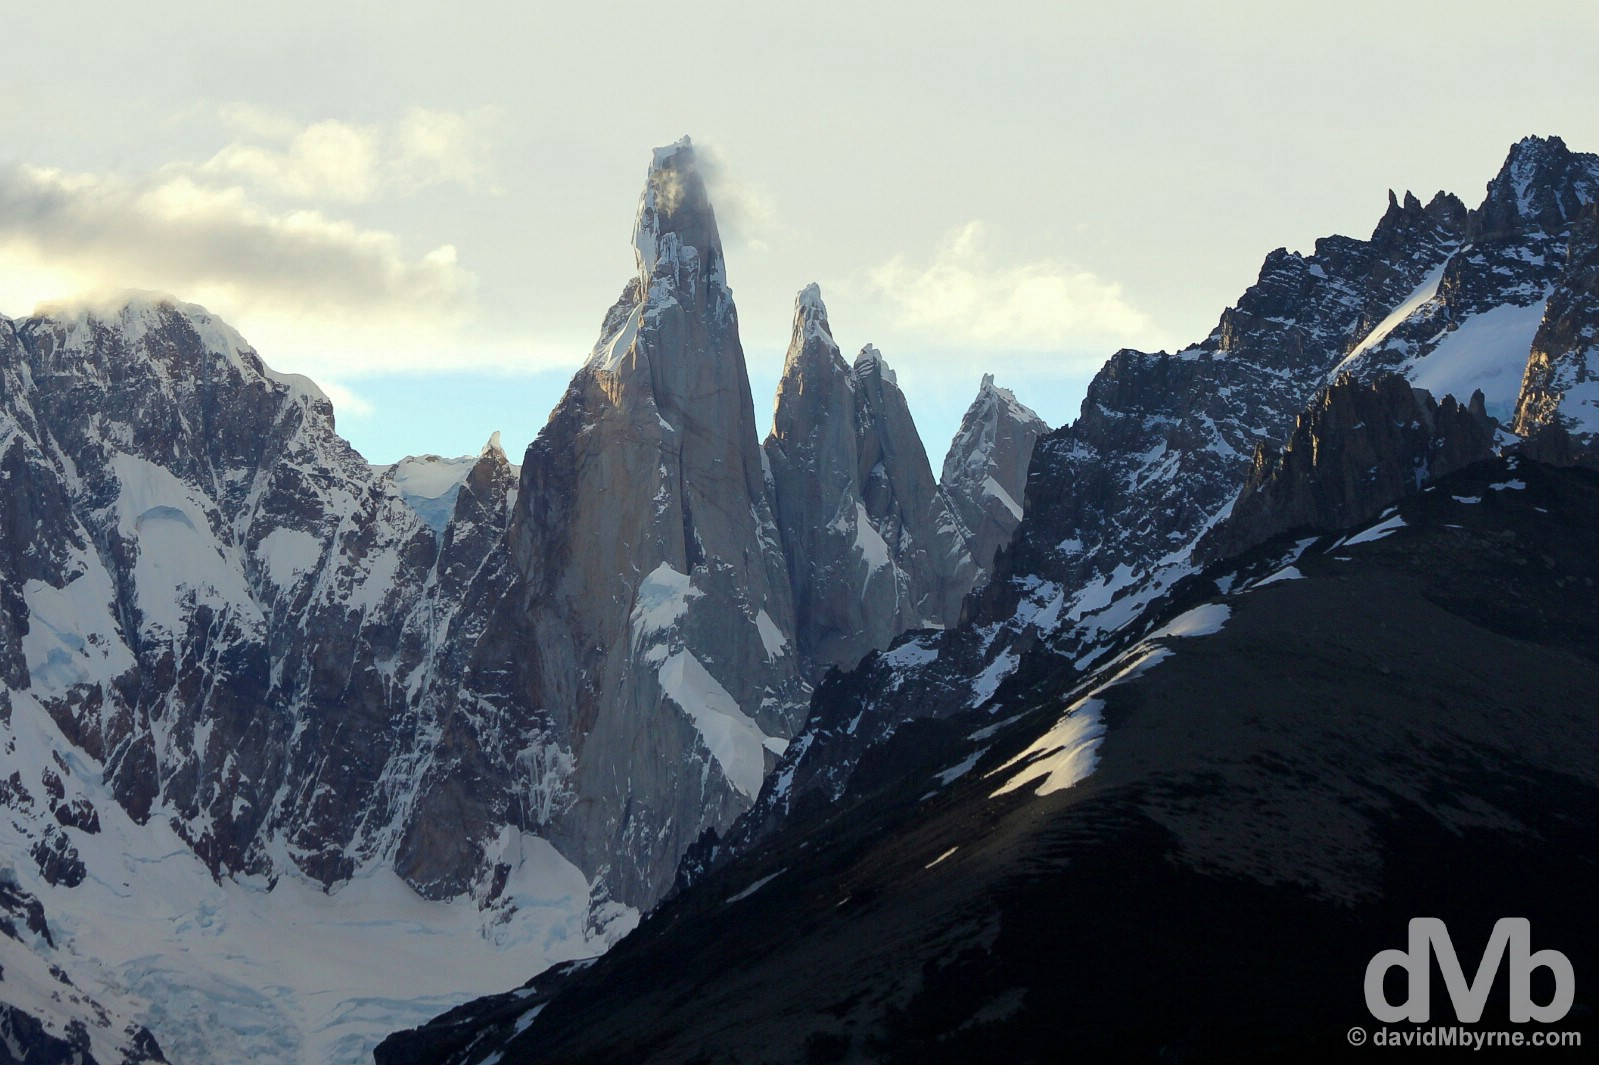 The last rays of the day on the distinctive, needle-like peak of Cerro Torre in Parque Nacional Los Glaciares, southern Patagonia, Argentina. November 3, 2015.